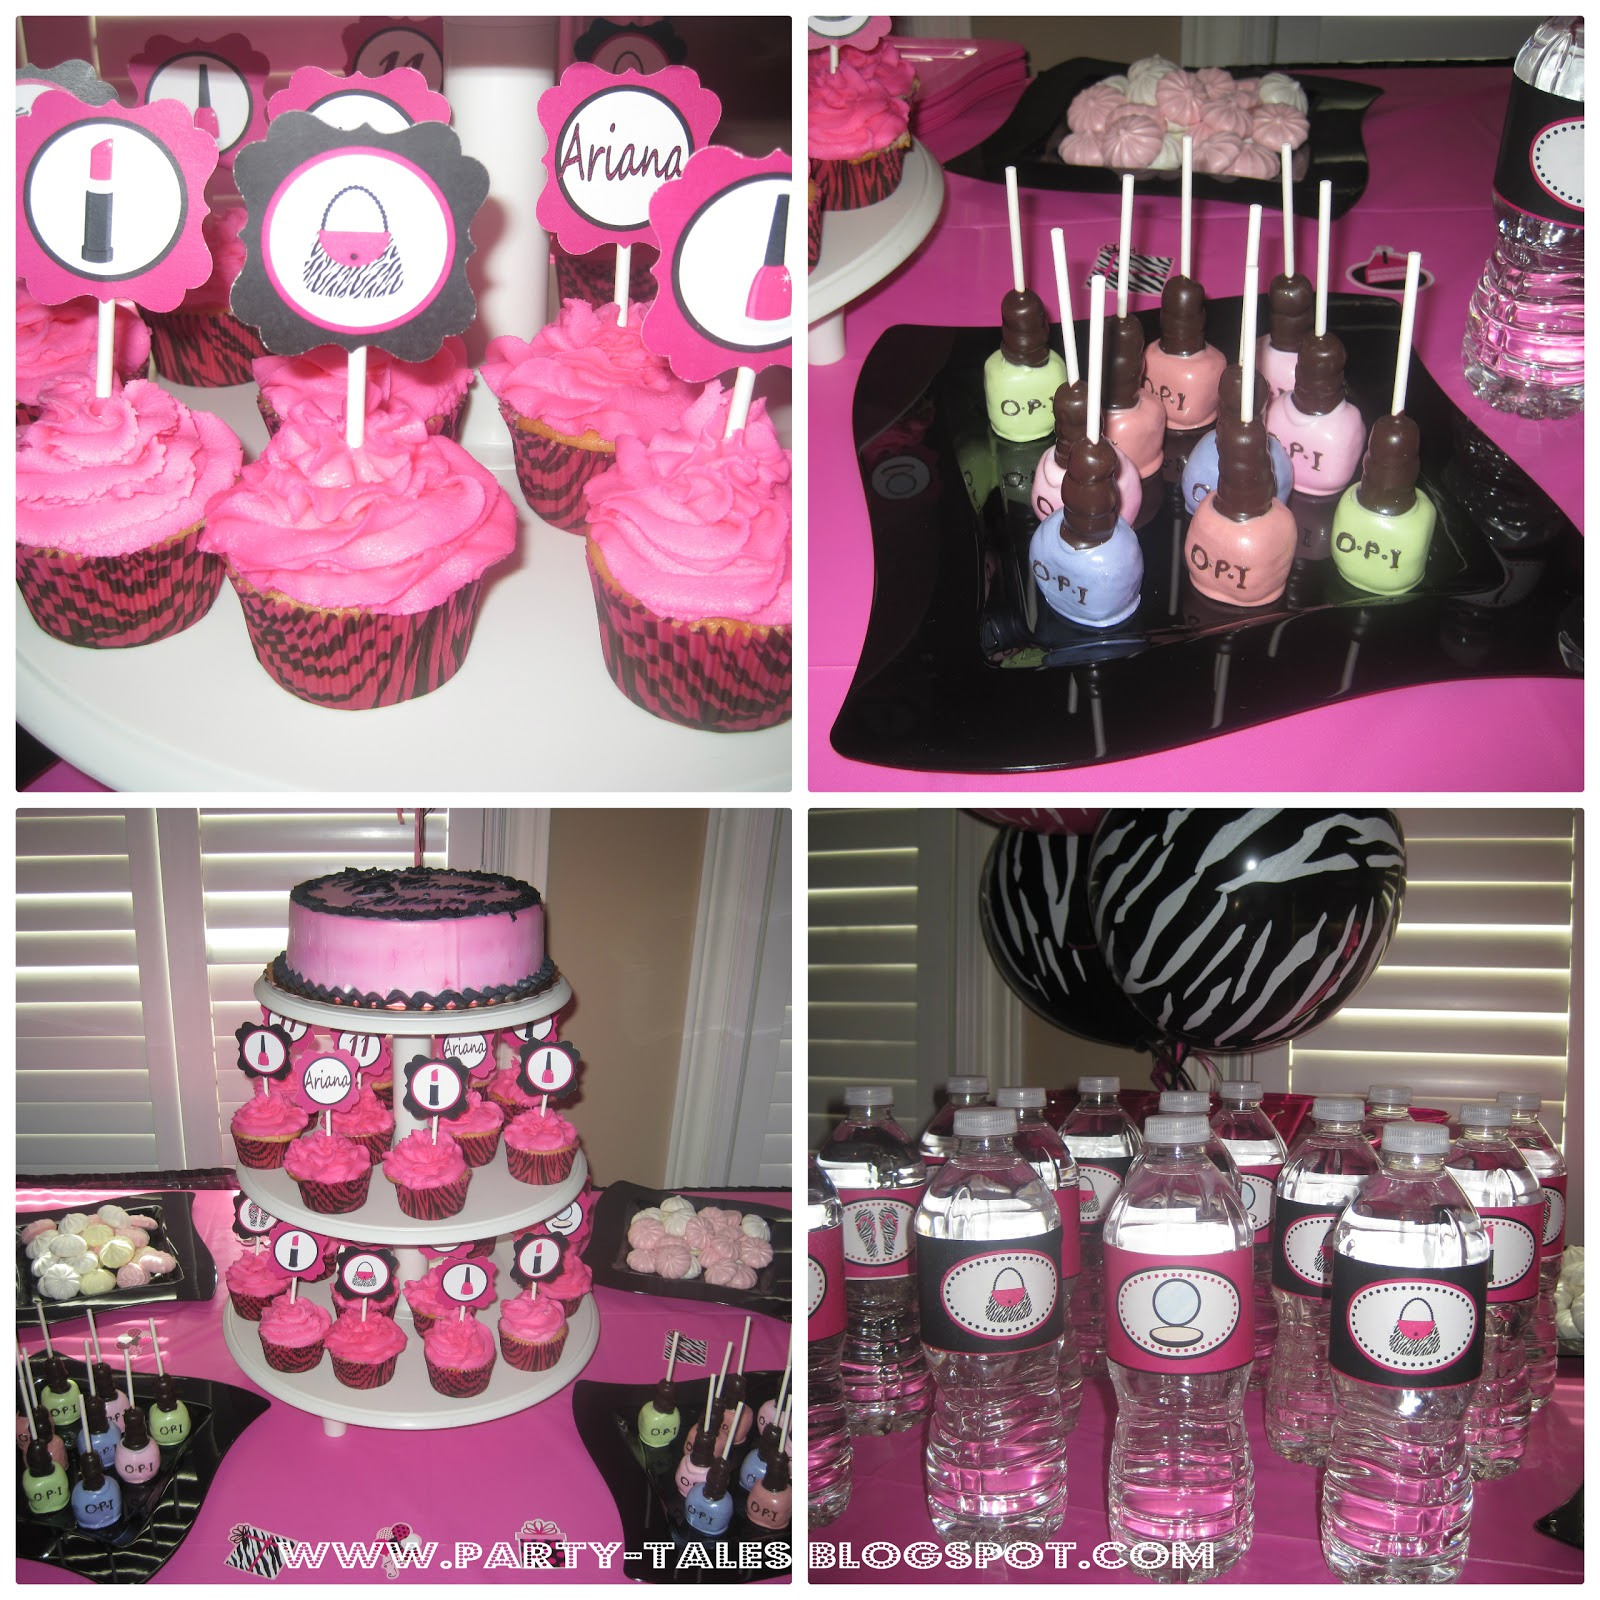 PartyTales Birthday Party Zebra Print and Hot Pink DIVA SPA Party